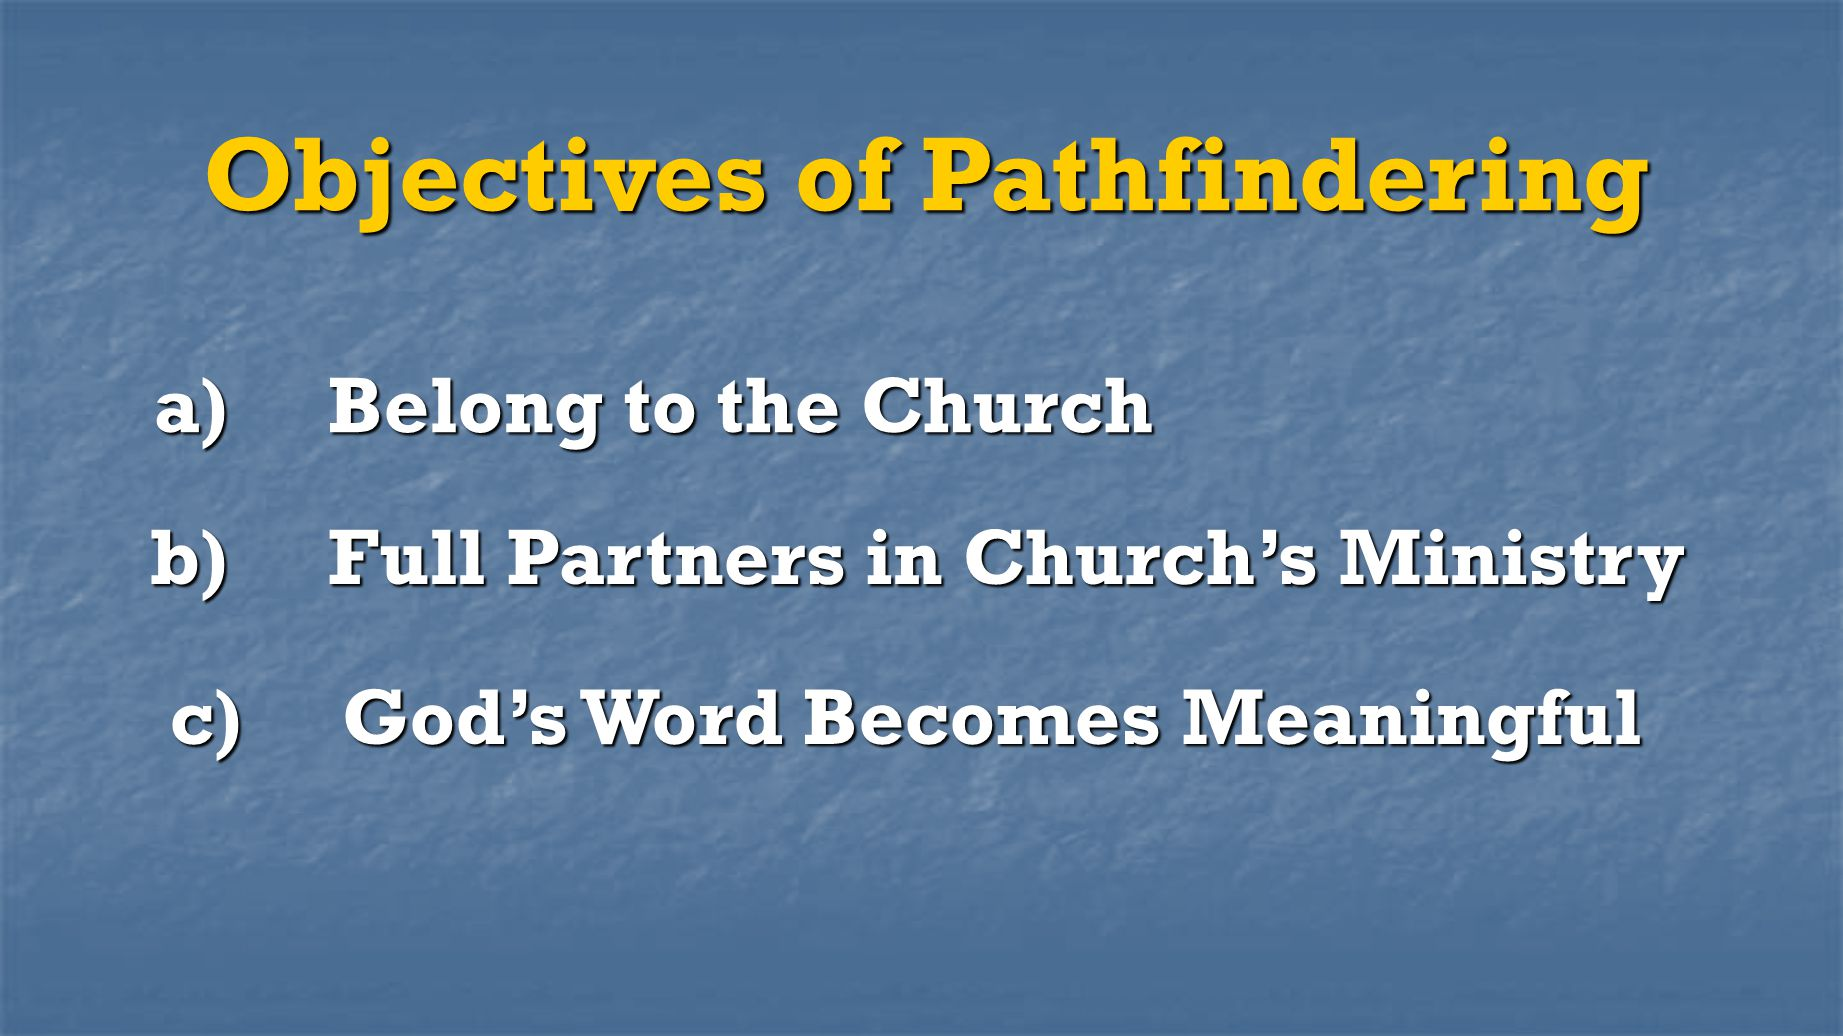 Objectives of Pathfindering